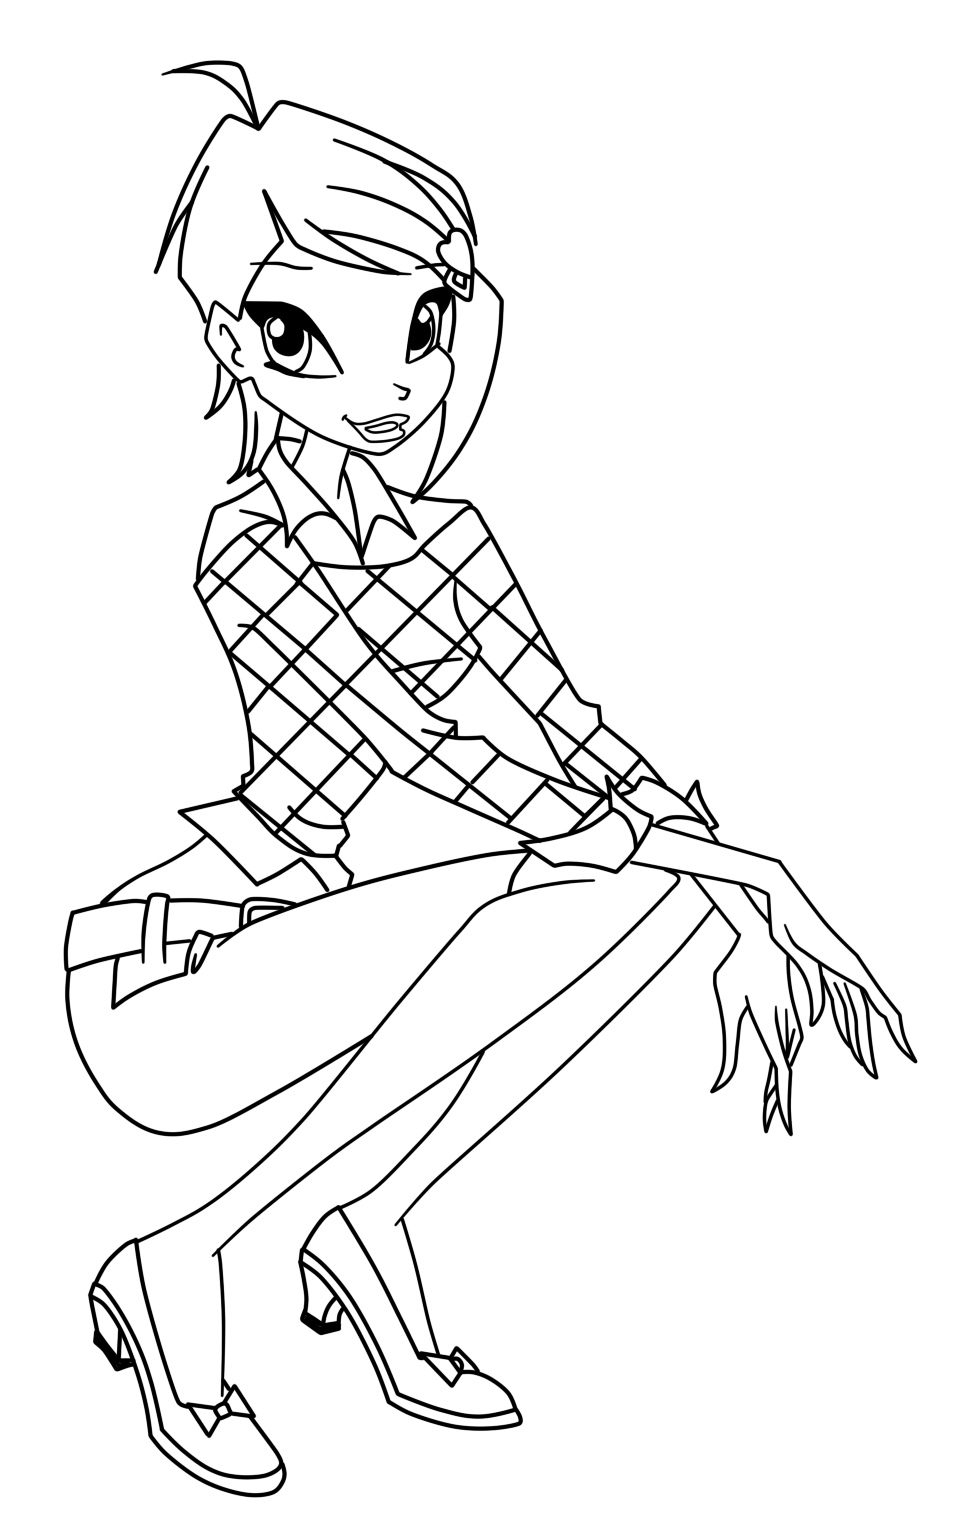 winx coloring pages online winx club stella coloring page free printable coloring pages coloring winx pages online